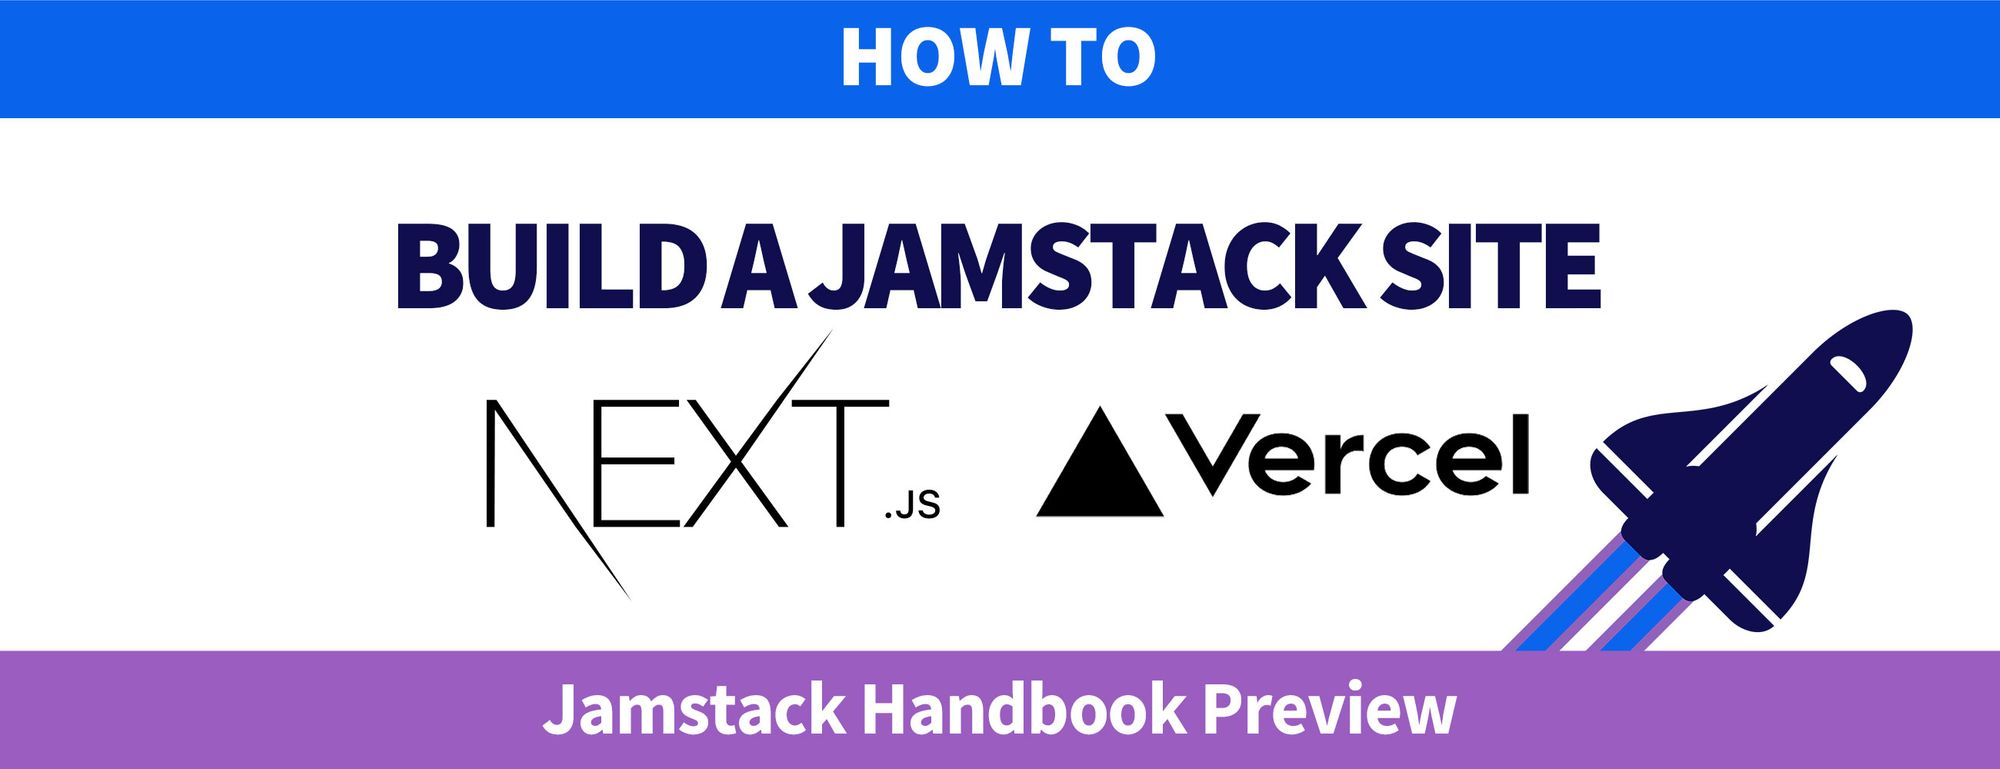 How to Build a Jamstack Site with Next.js and Vercel - Jamstack Handbook